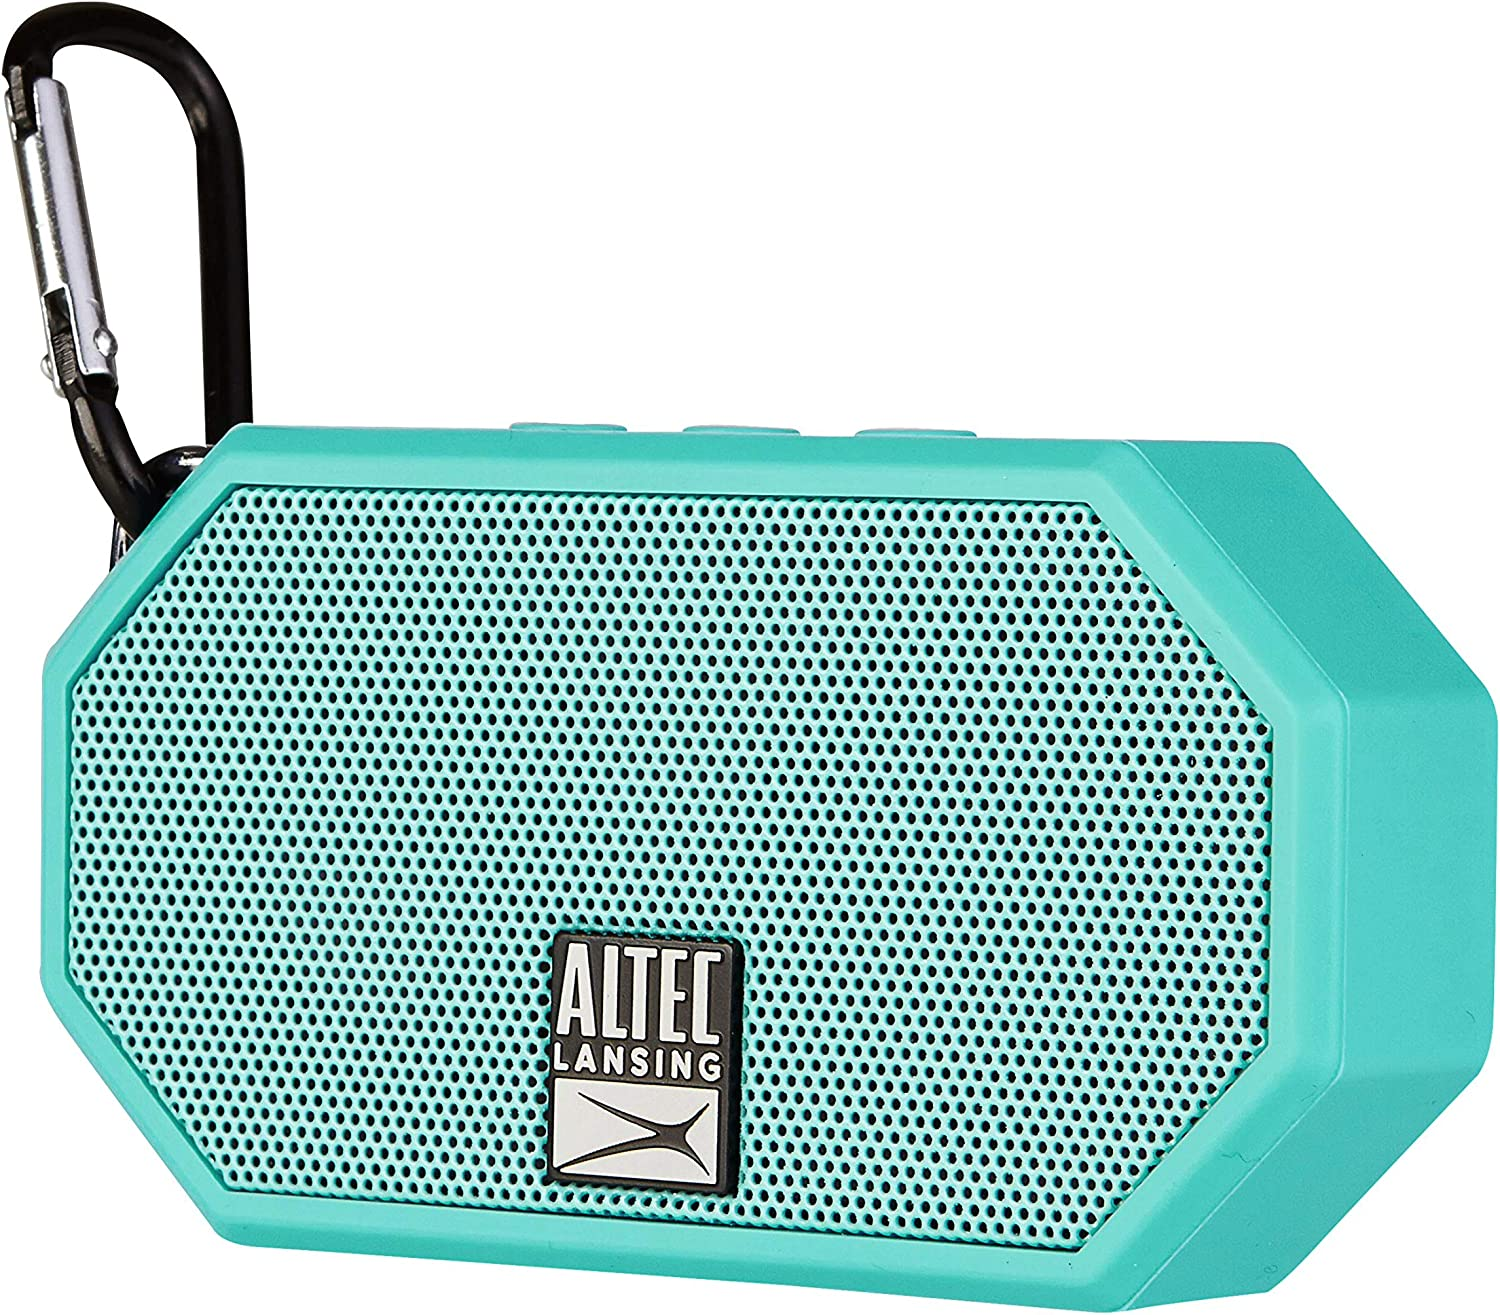 Altec Lansing Mini H2O - Wireless, Bluetooth, Waterproof Speaker, Floating, IP67, Portable Speaker, Strong Bass, Rich Stereo System, Microphone, 30 ft Range, Lightweight, 6-Hour Battery, (Teal)